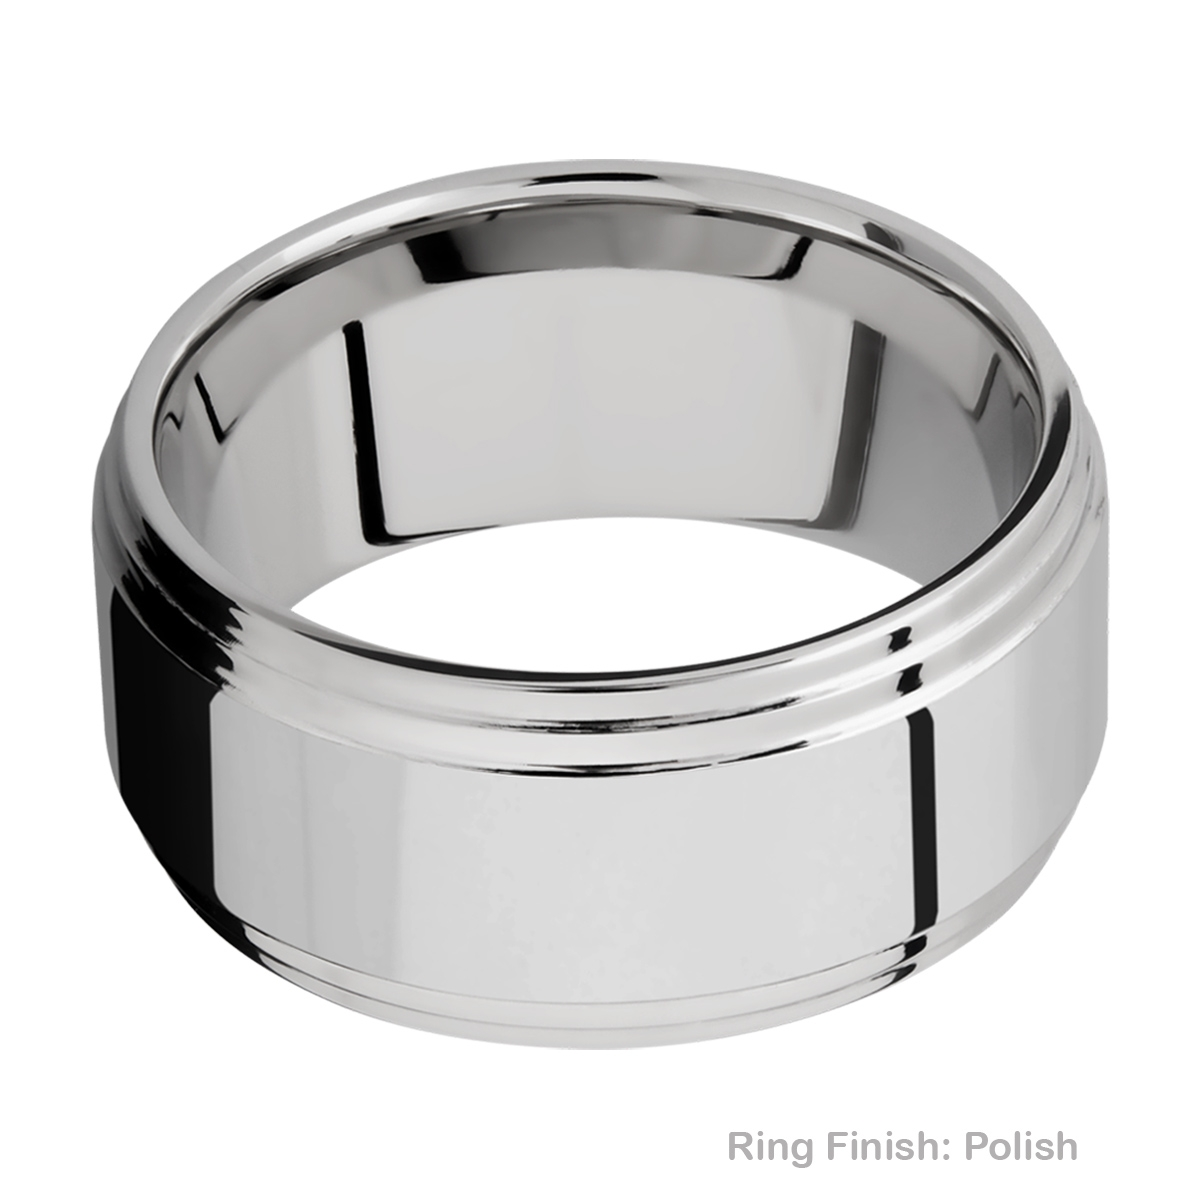 Lashbrook 10F2S Titanium Wedding Ring or Band Alternative View 4